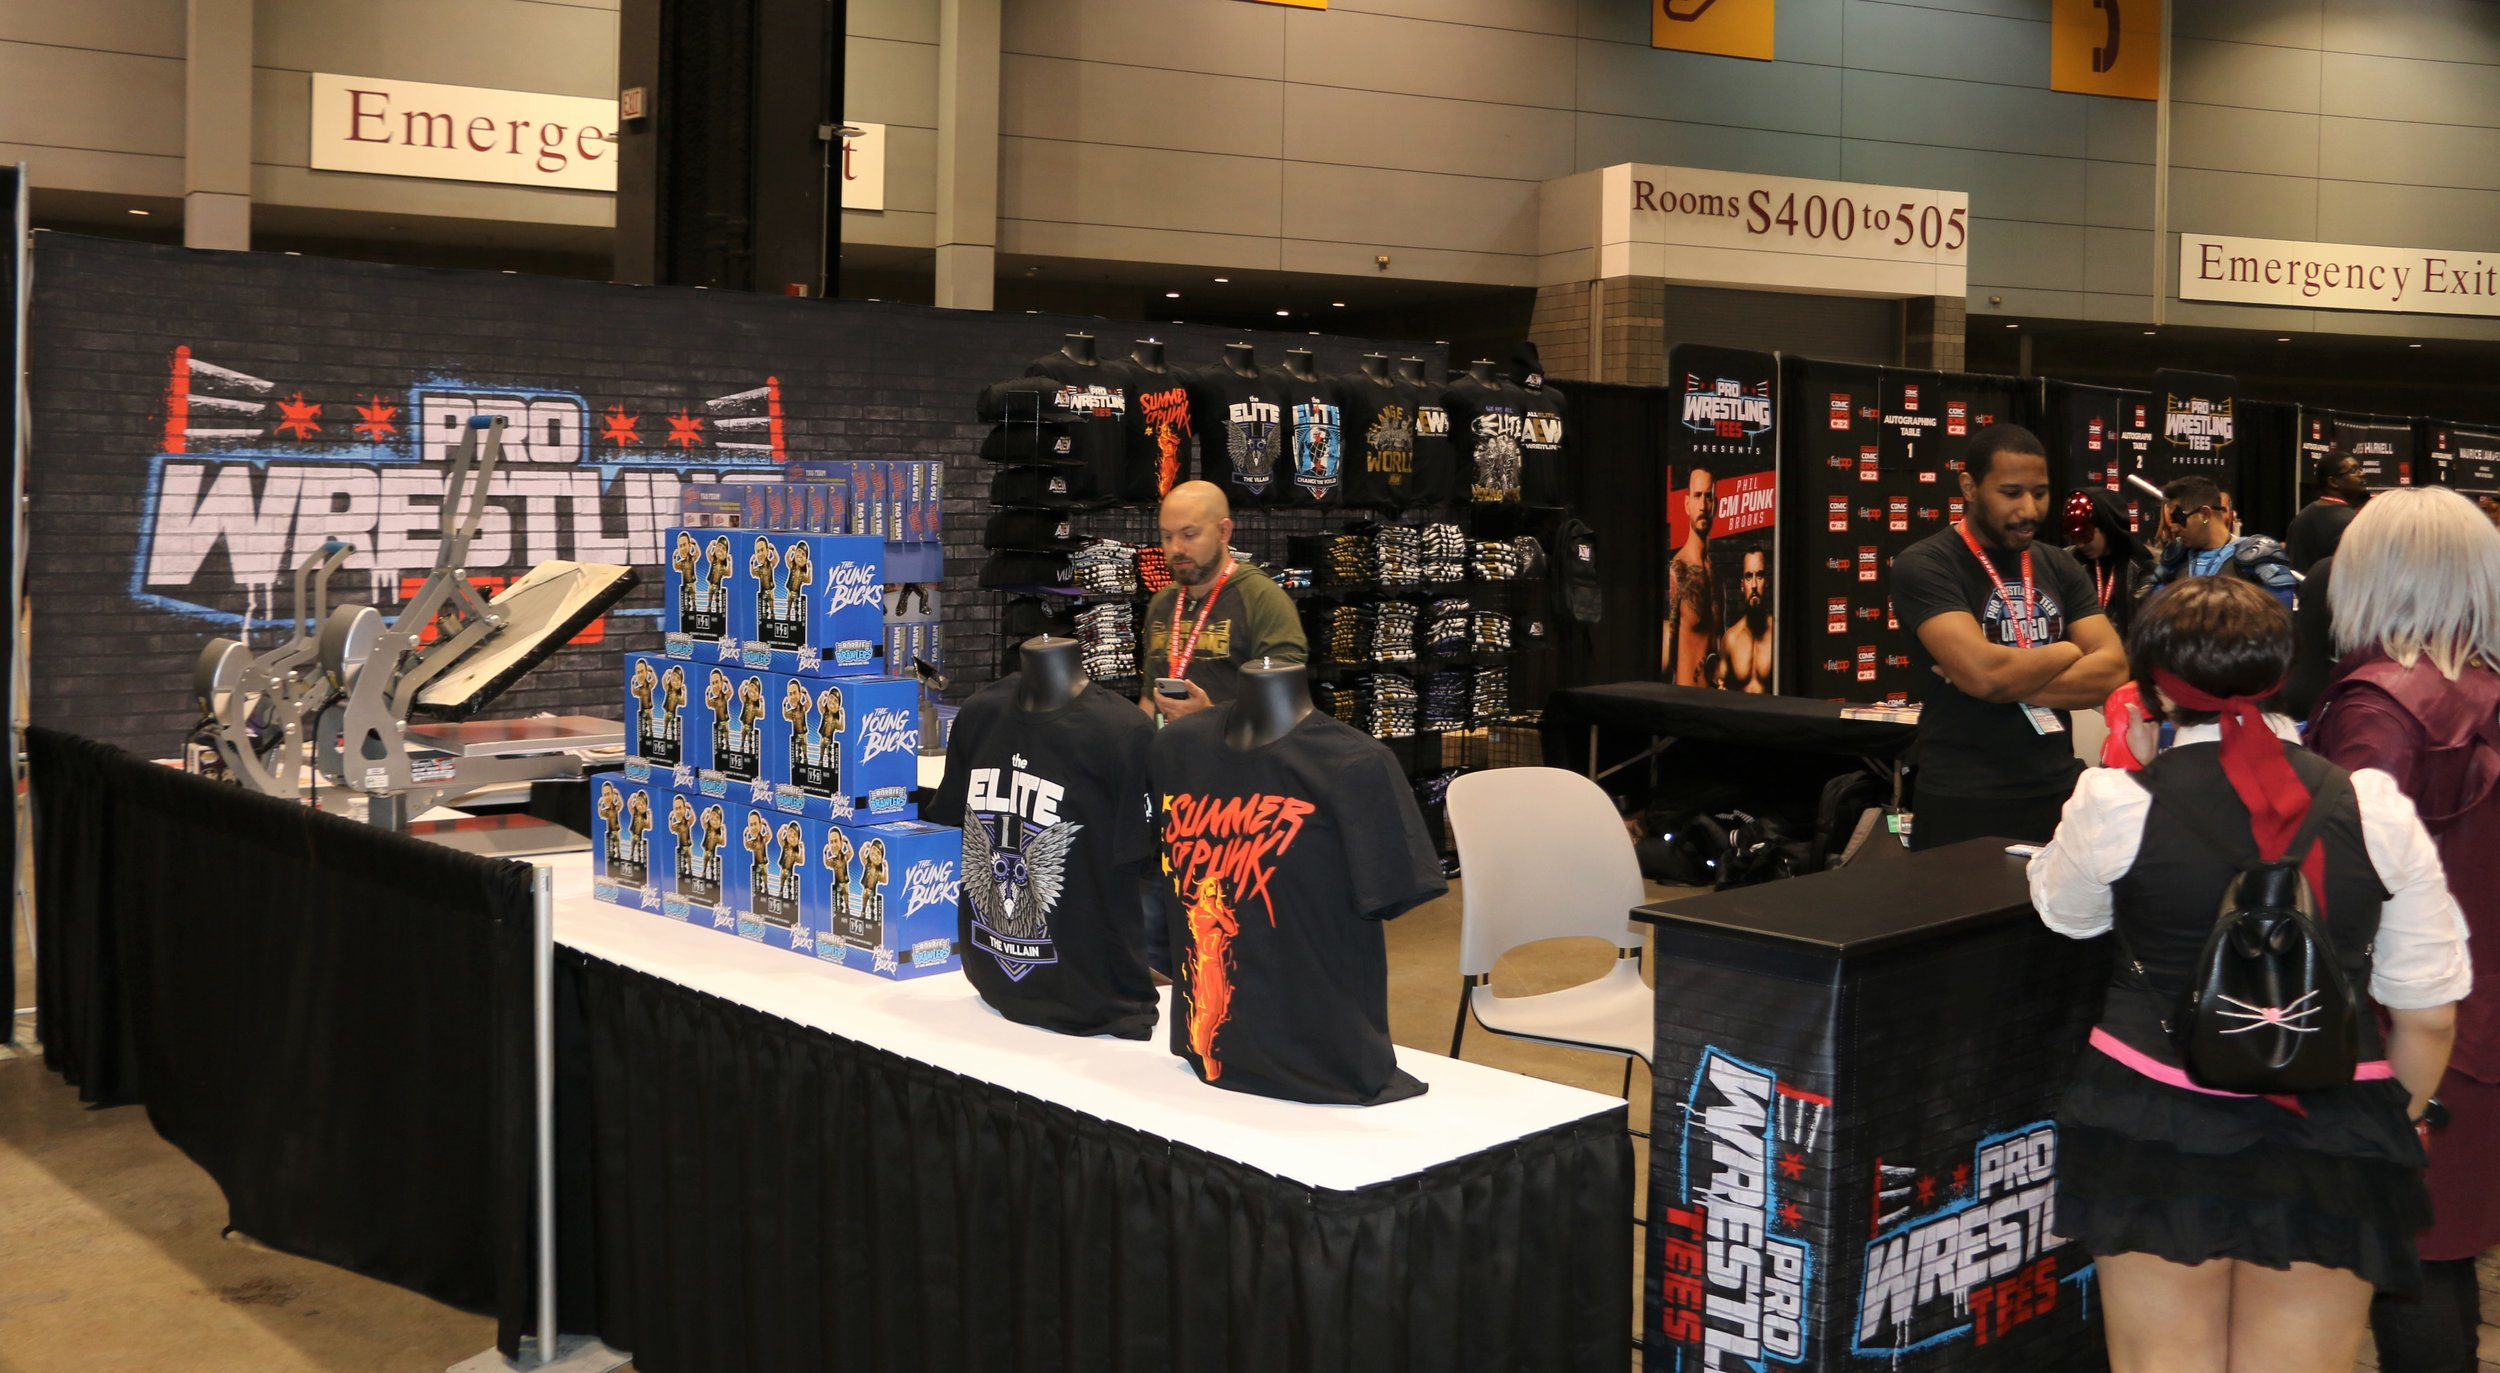 Pro Wrestling Tees booth at C2E2.